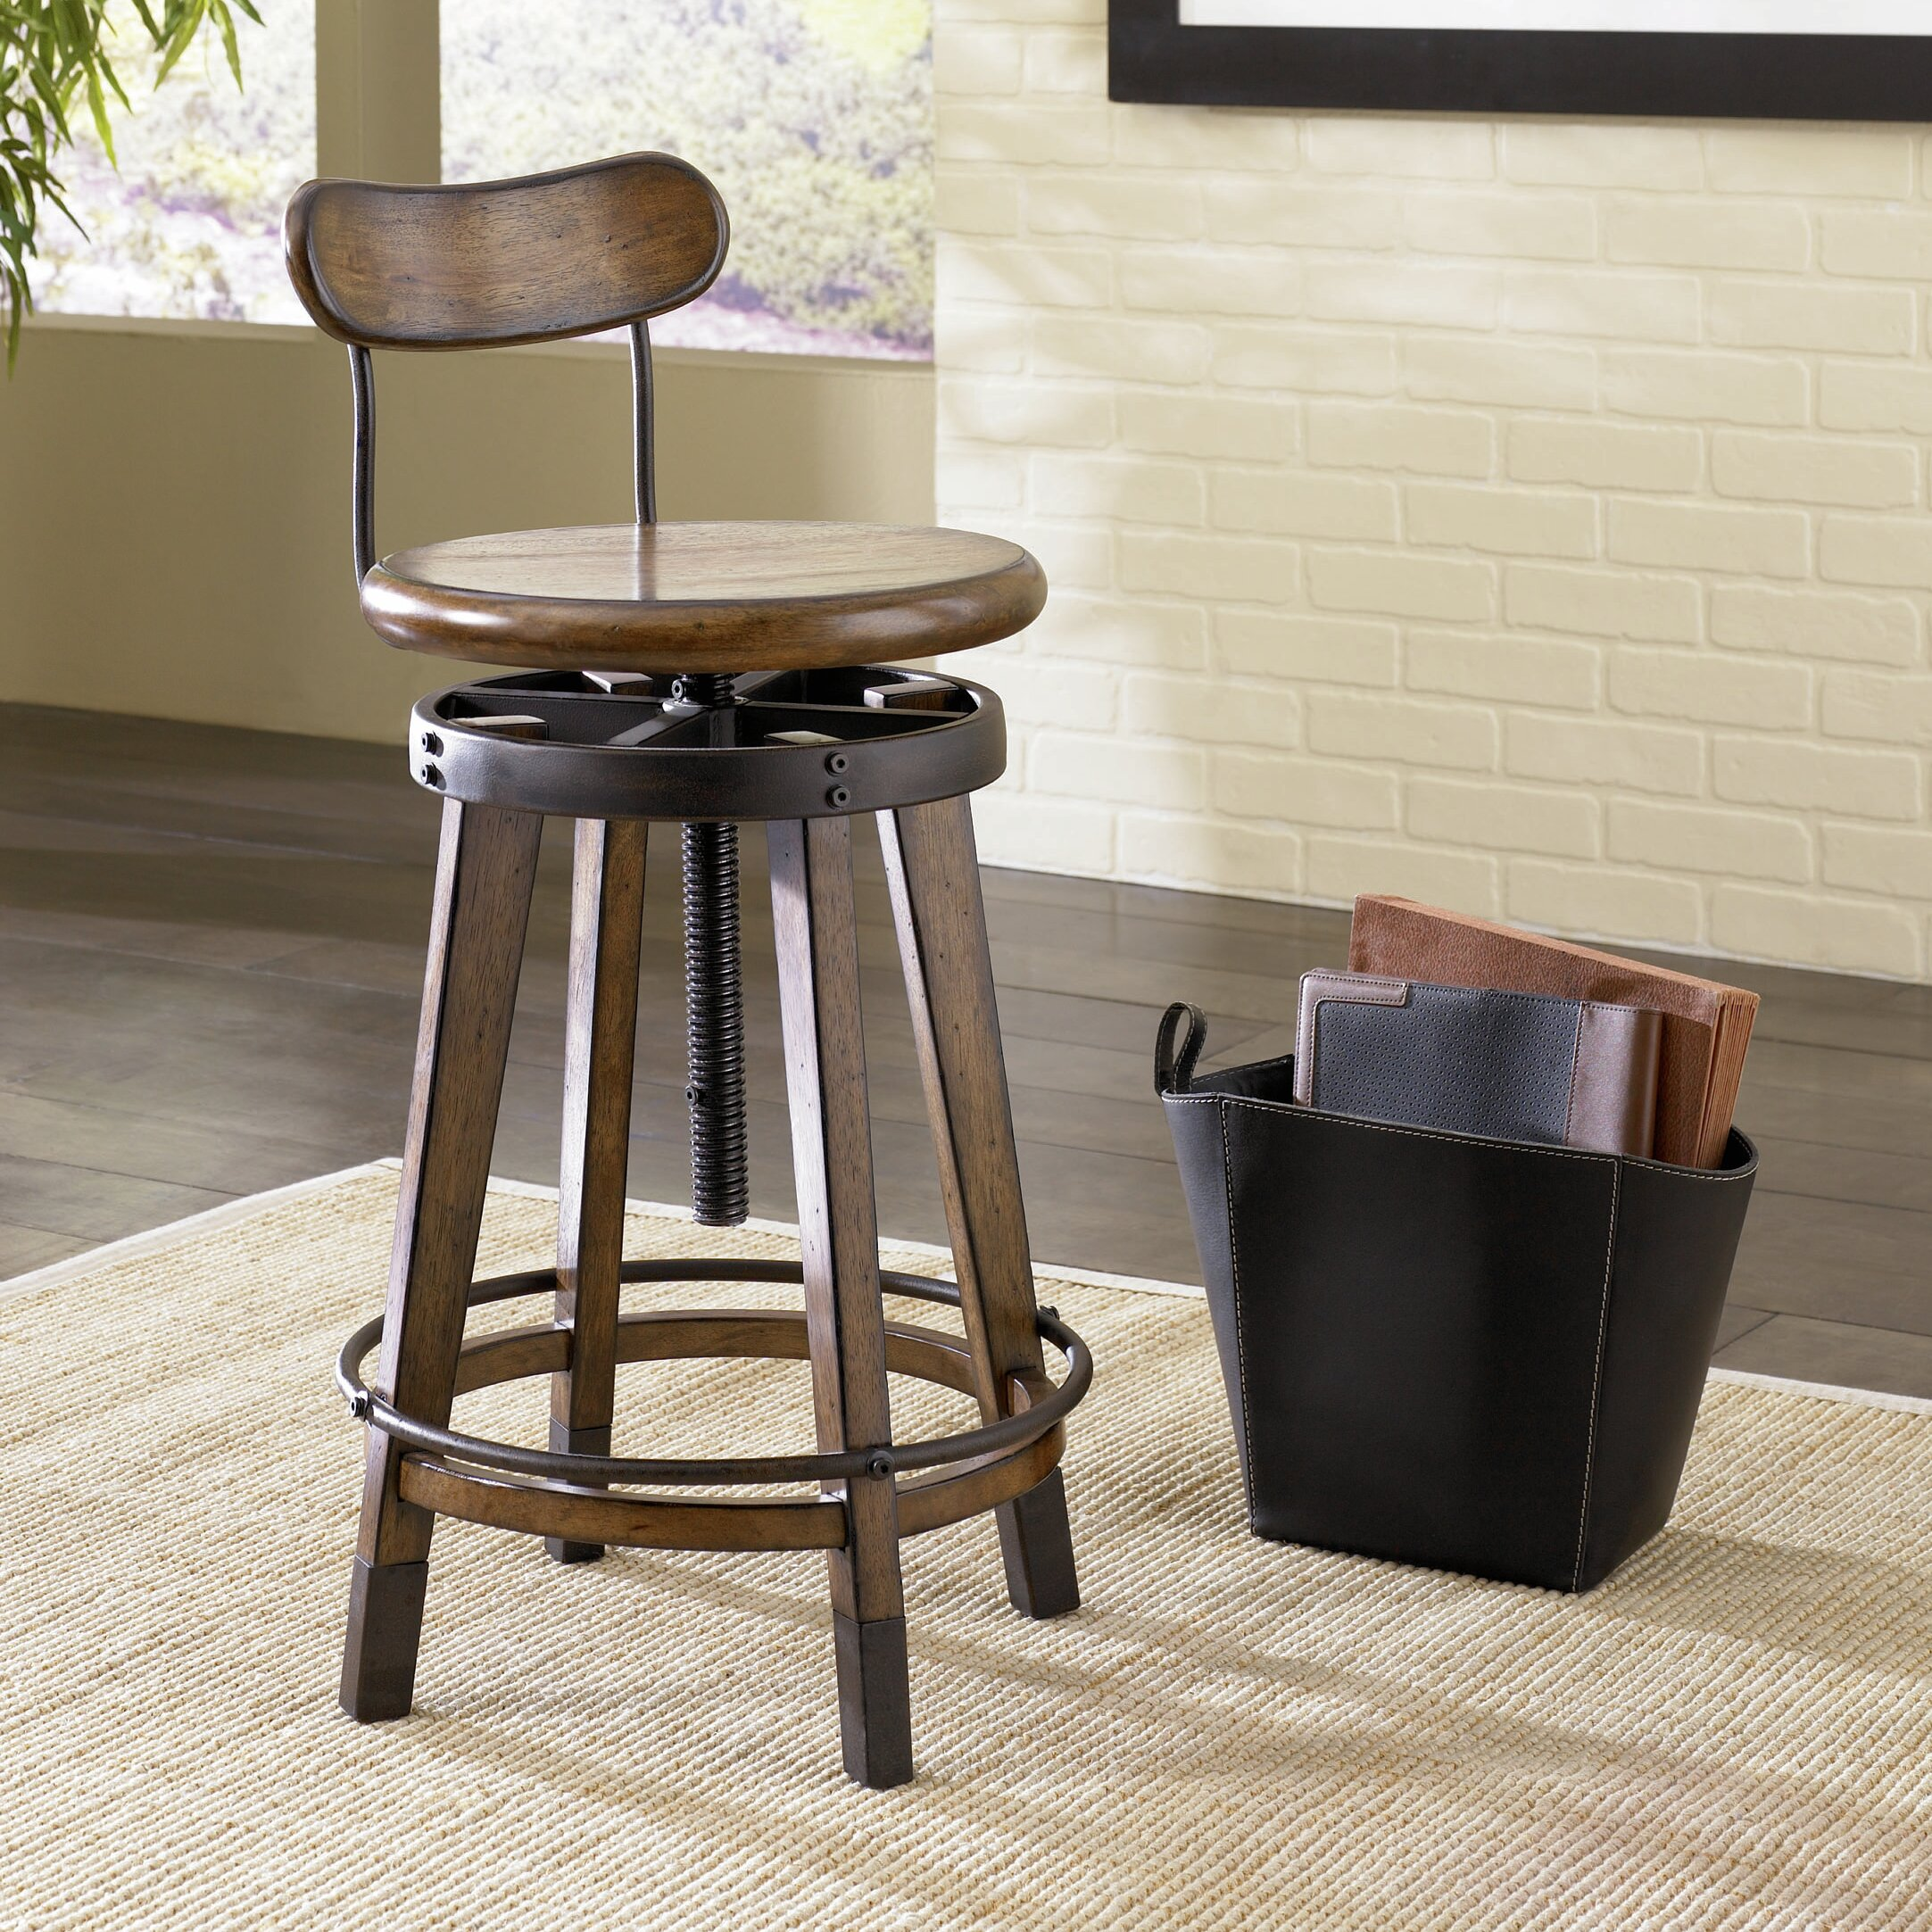 Hammary Studio Home Adjustable Height Swivel Bar Stool